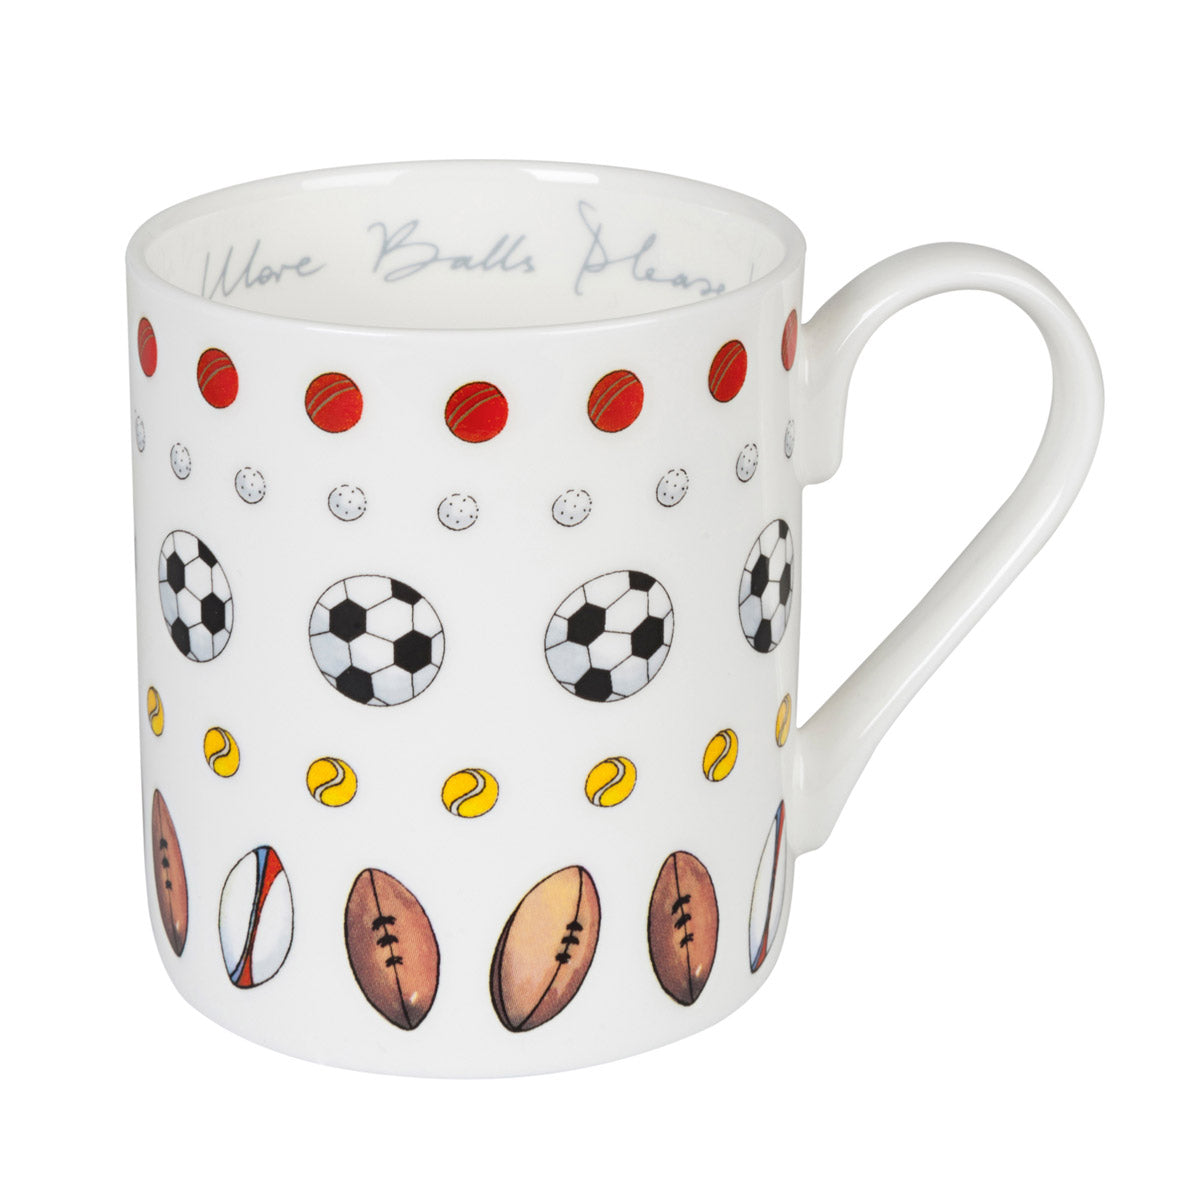 More Balls Please! Mug